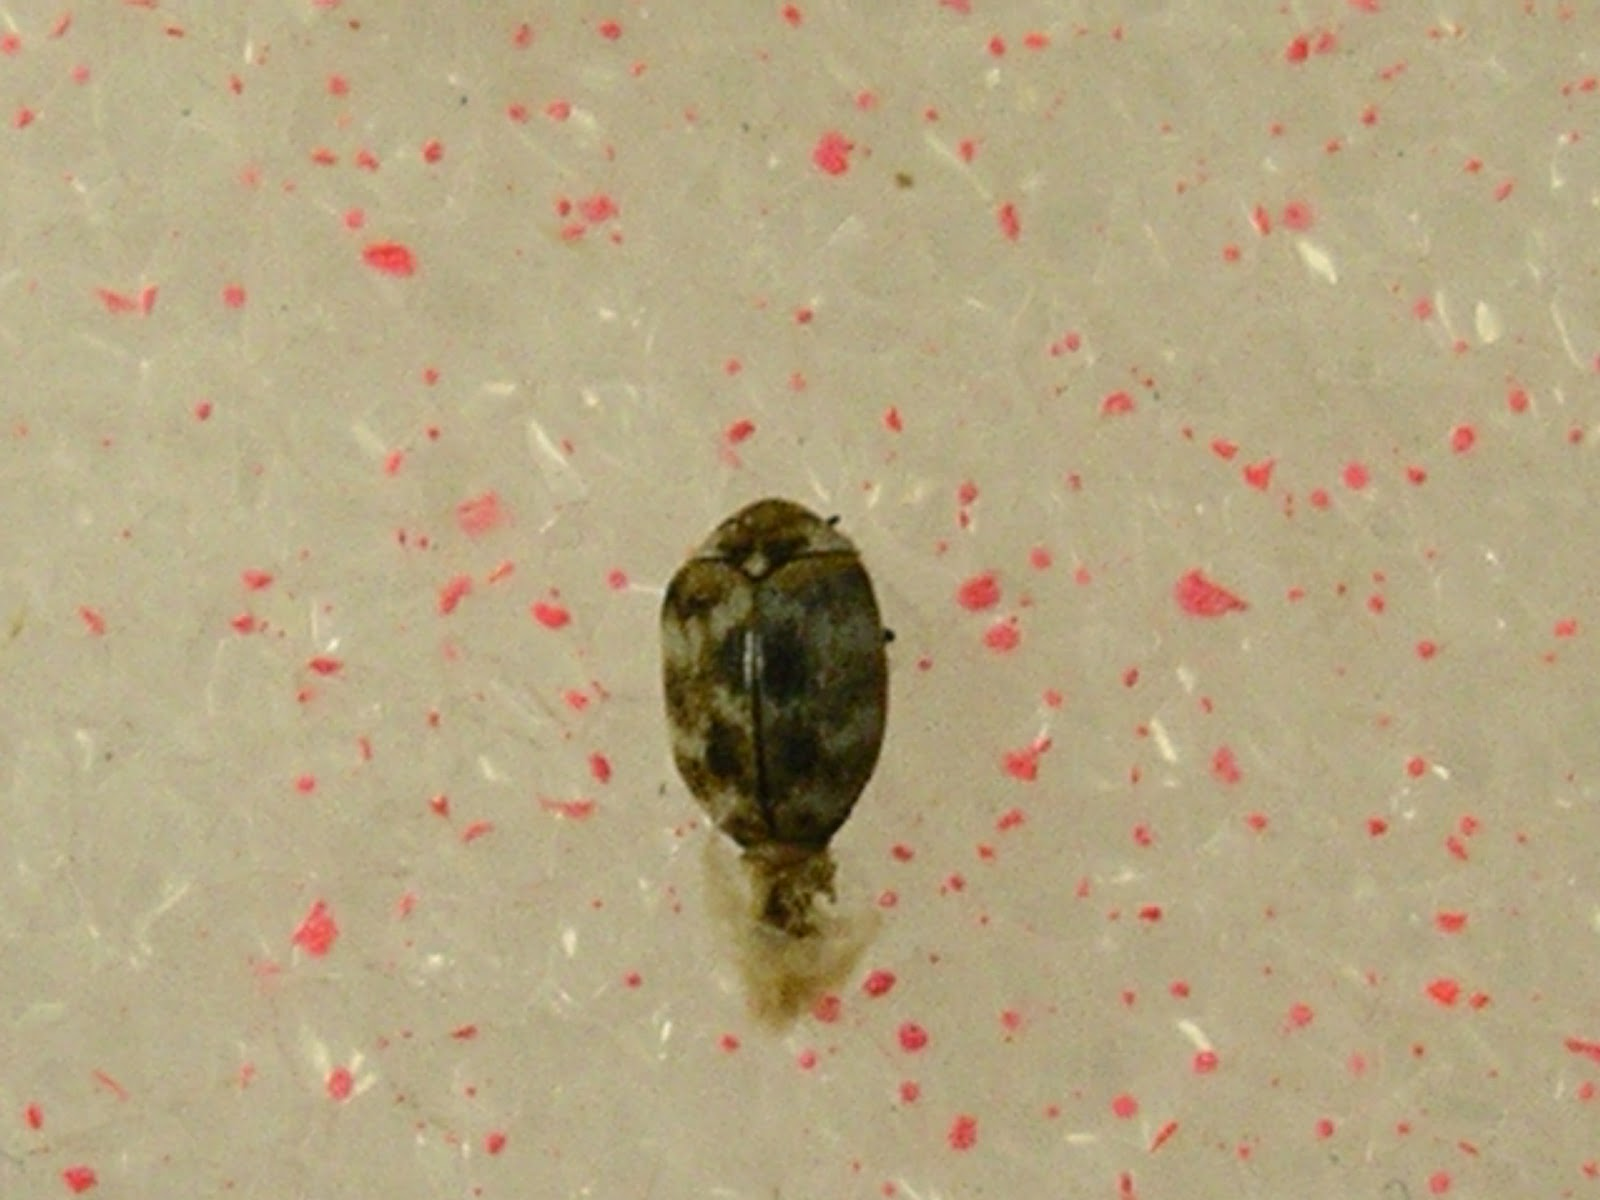 Carpet beetle adult. Urban IPM  Carpet beetles   not bed bugs